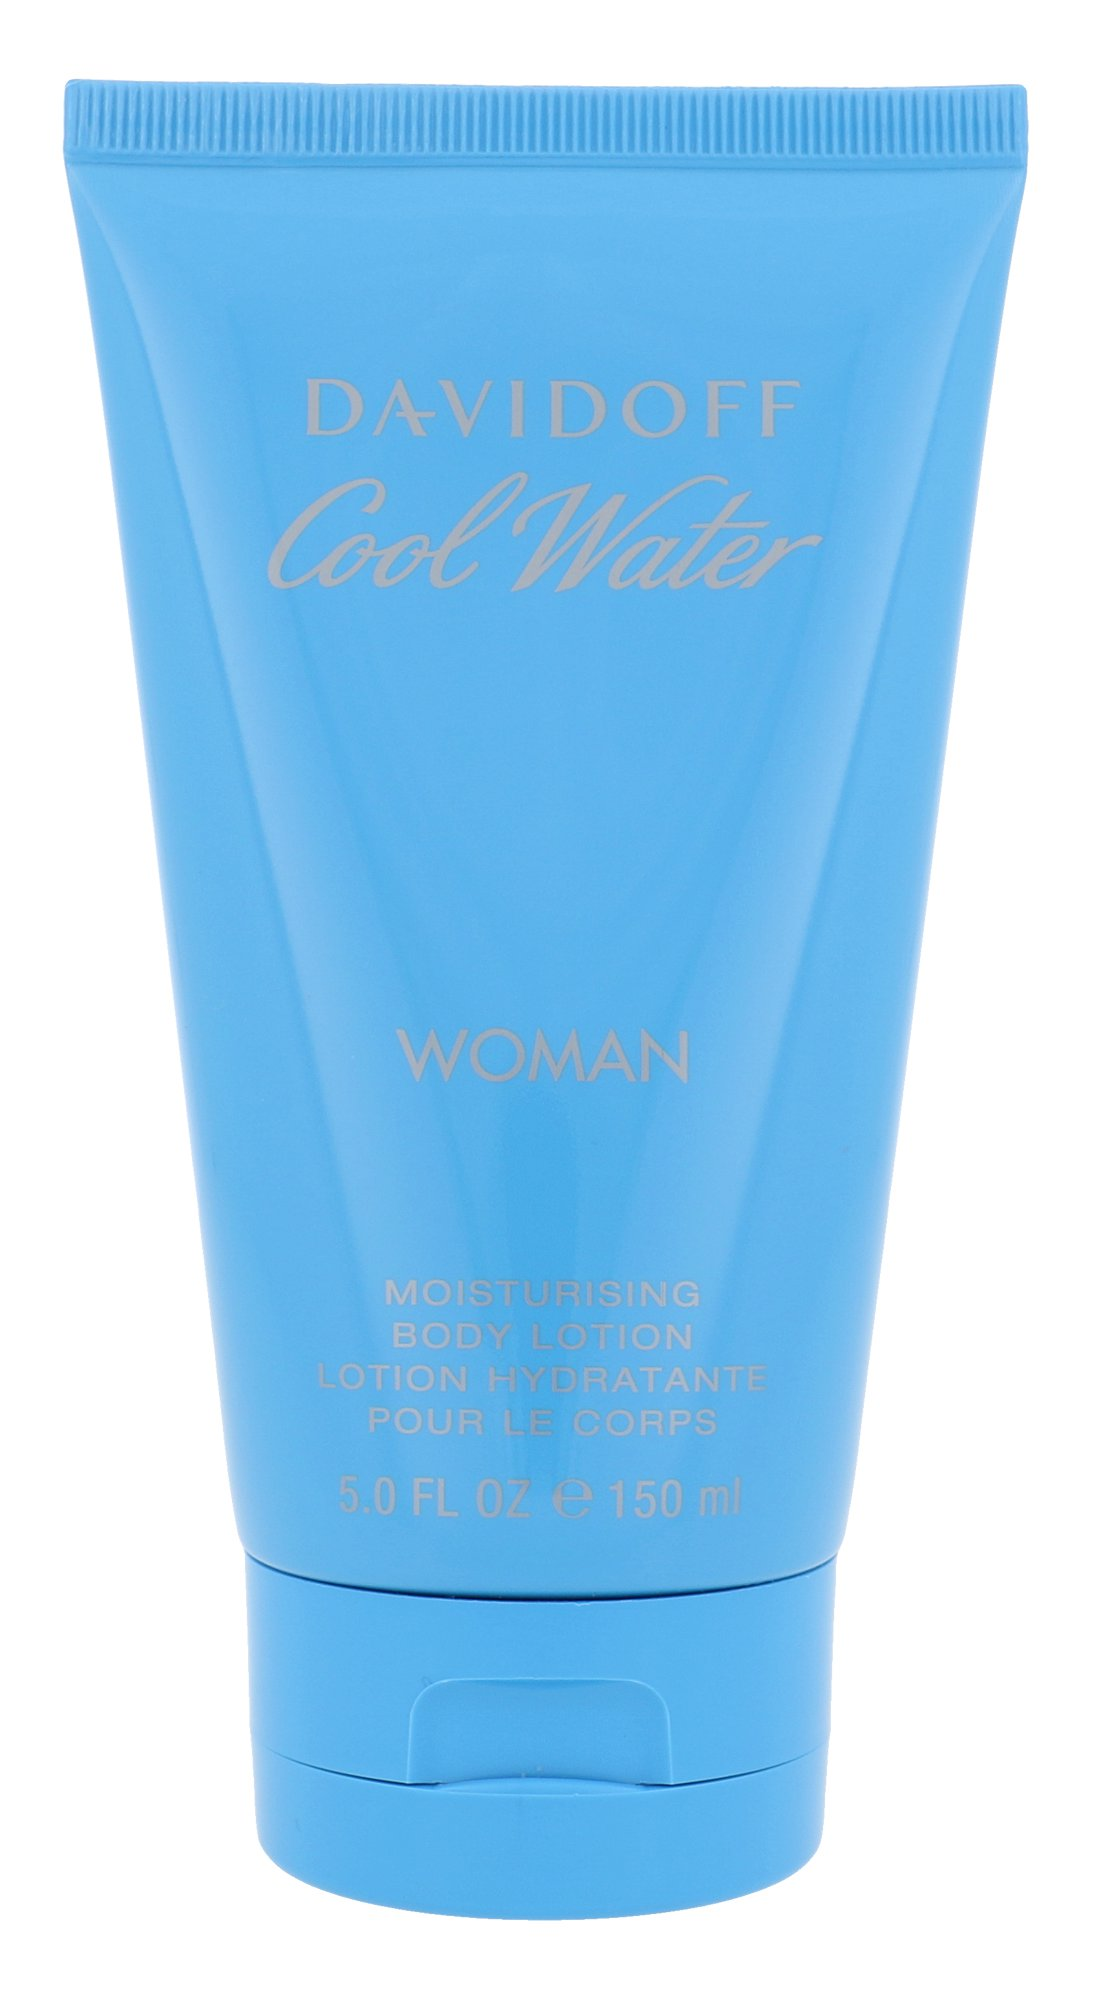 Davidoff Cool Water, Testápoló 150ml, Woman